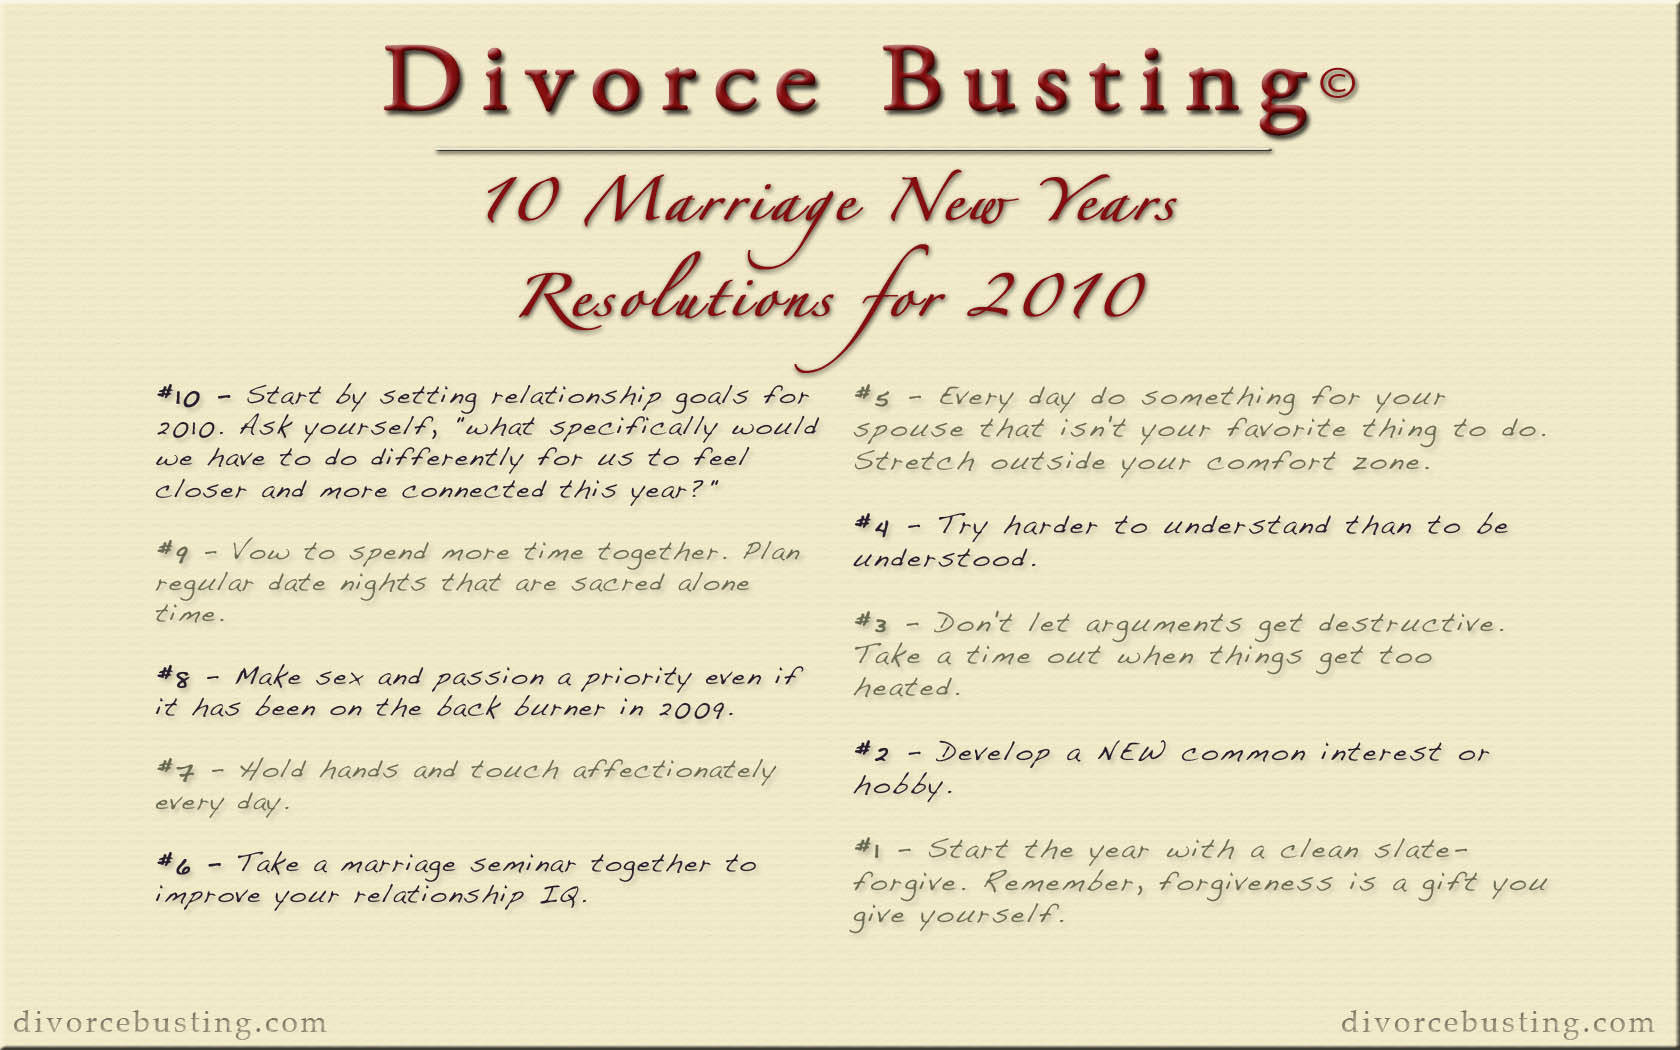 10 Marriage New Years Resolutions for 2010 | Divorce Busting